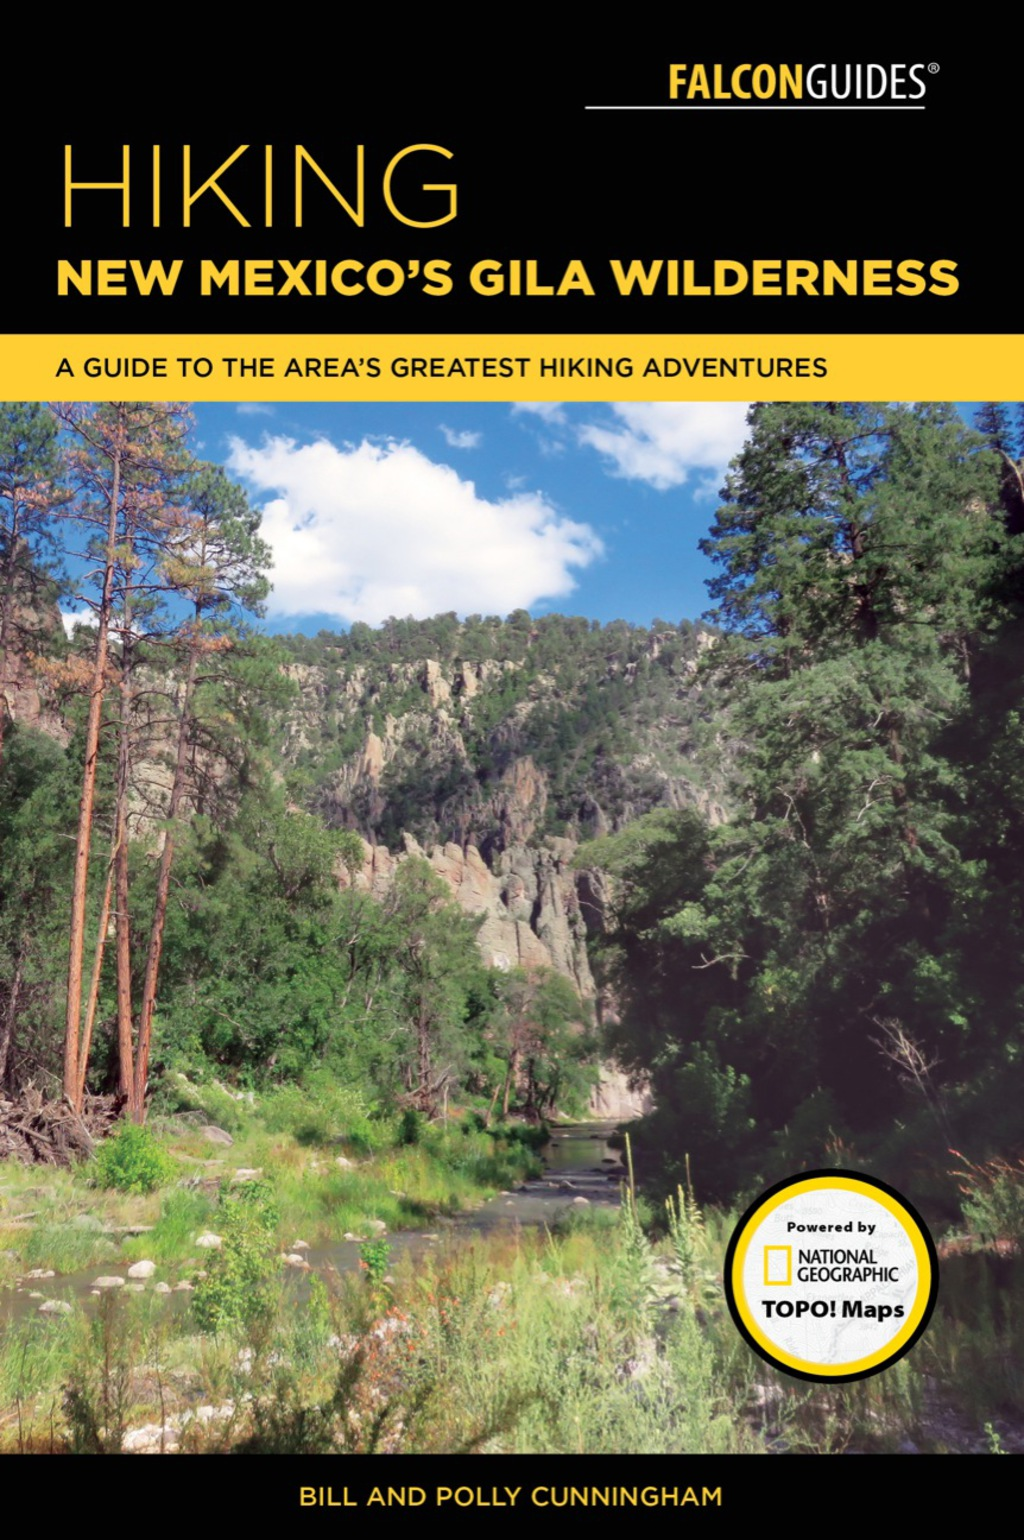 Hiking New Mexico's Gila Wilderness (ebook) eBooks